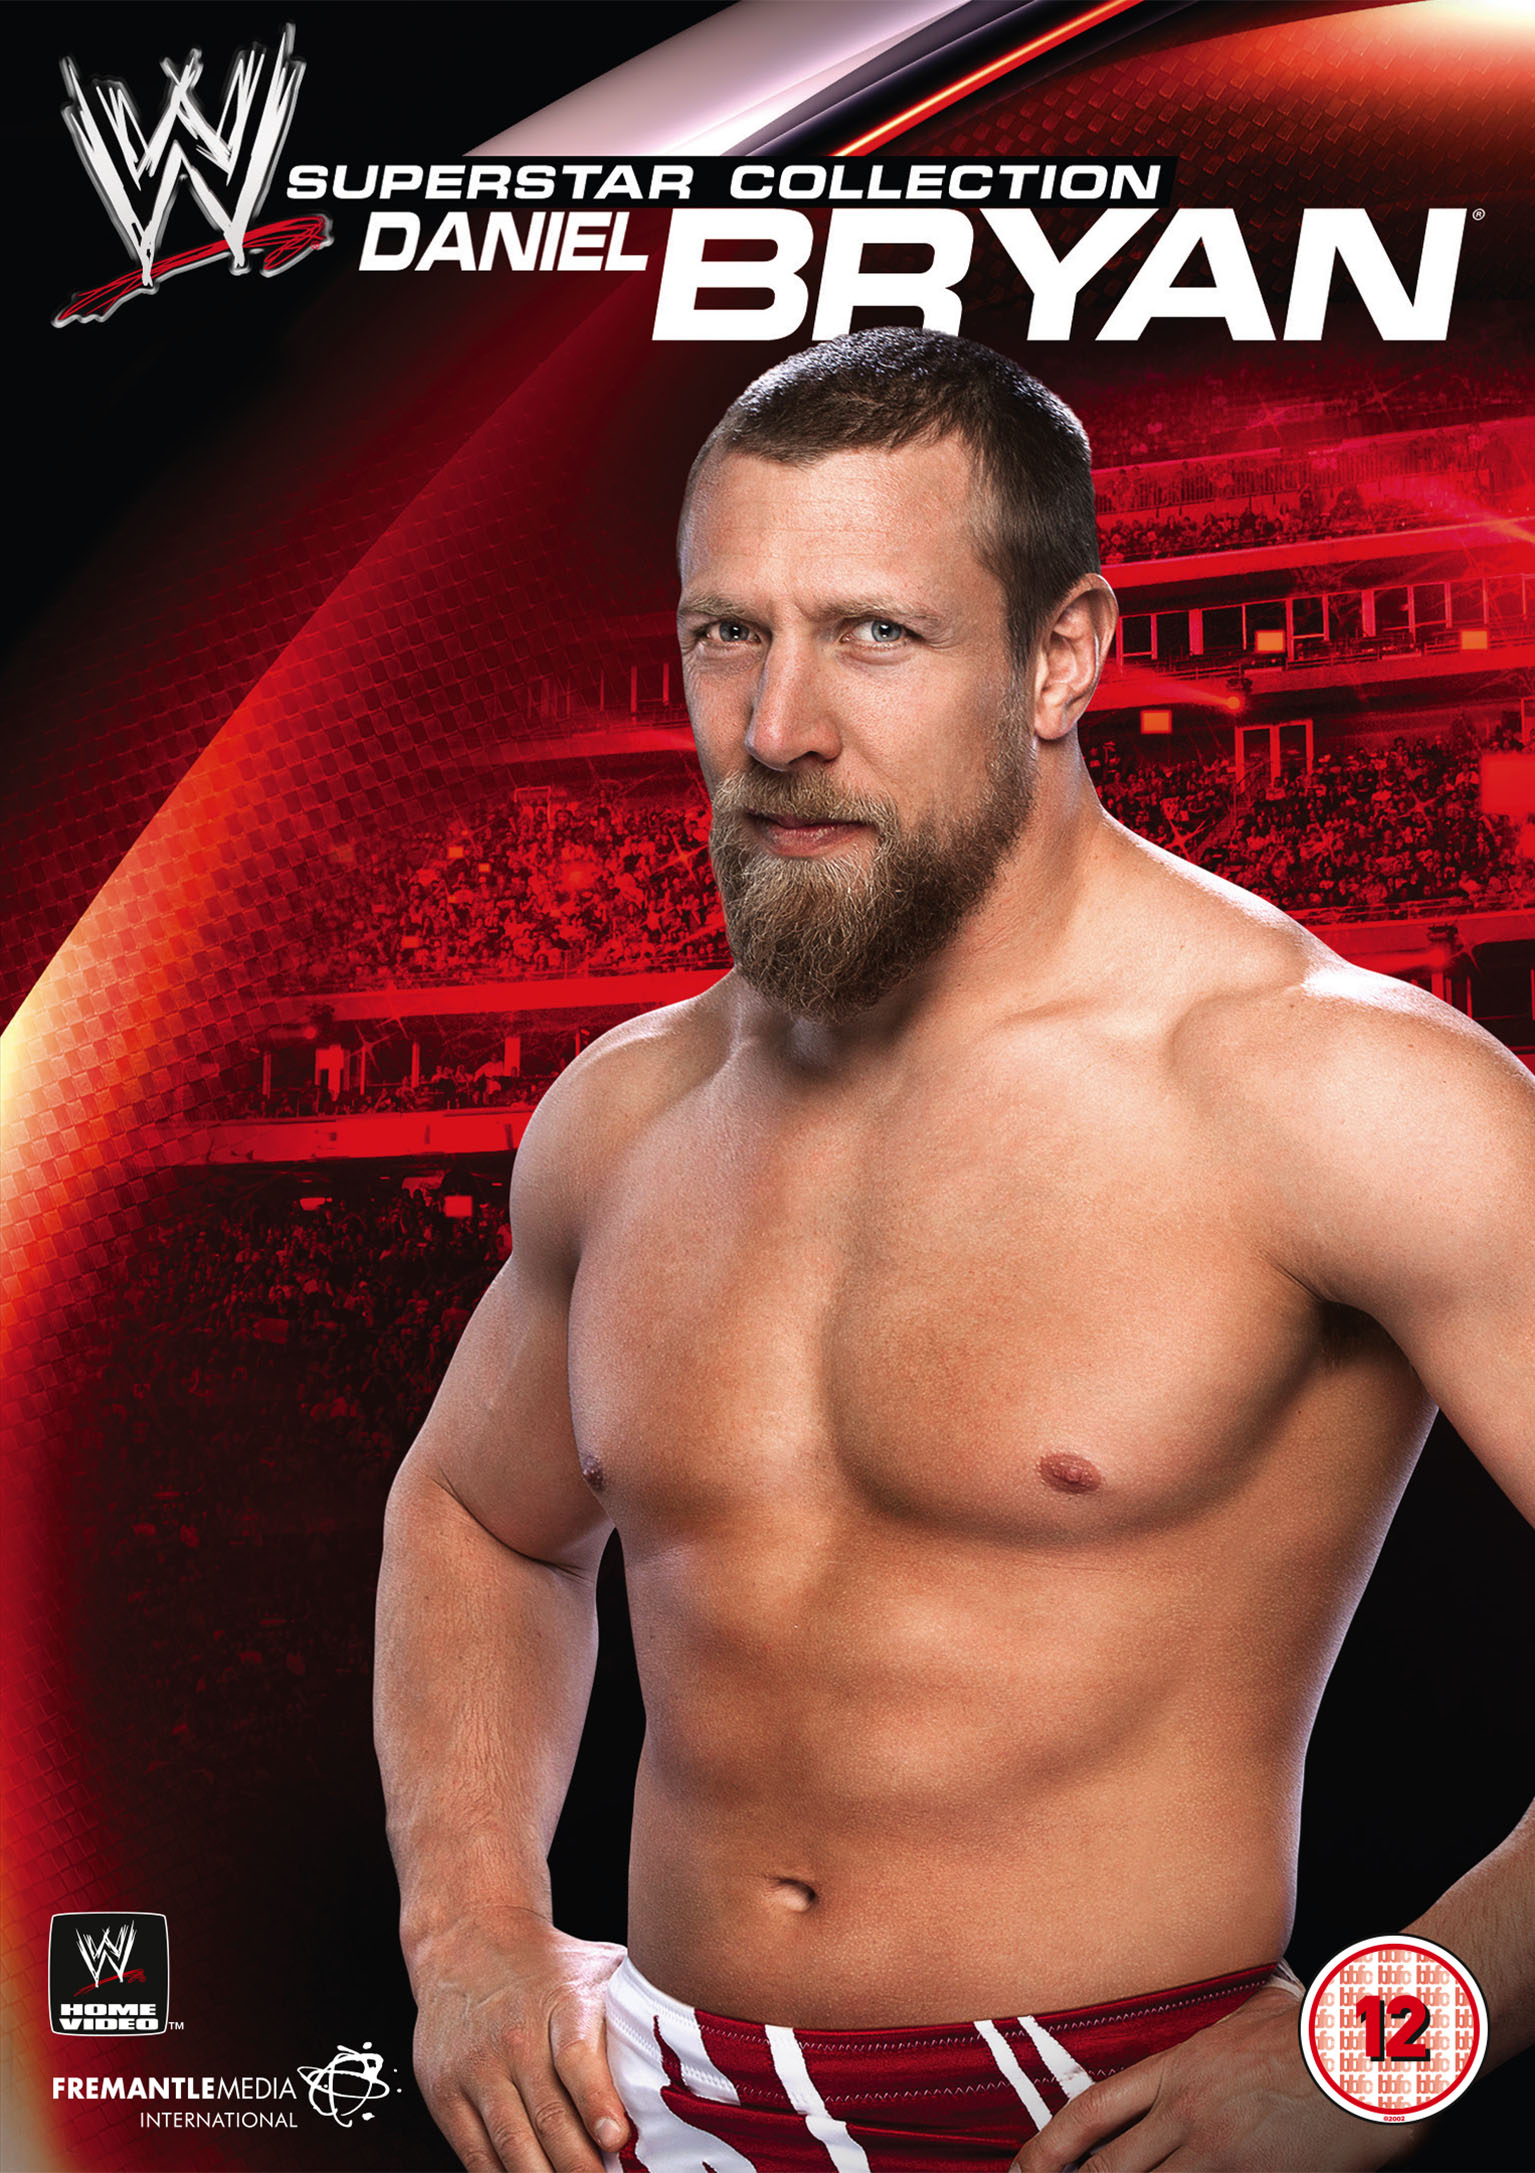 Wwe Superstar Collection Daniel Bryan Fetch Publicity